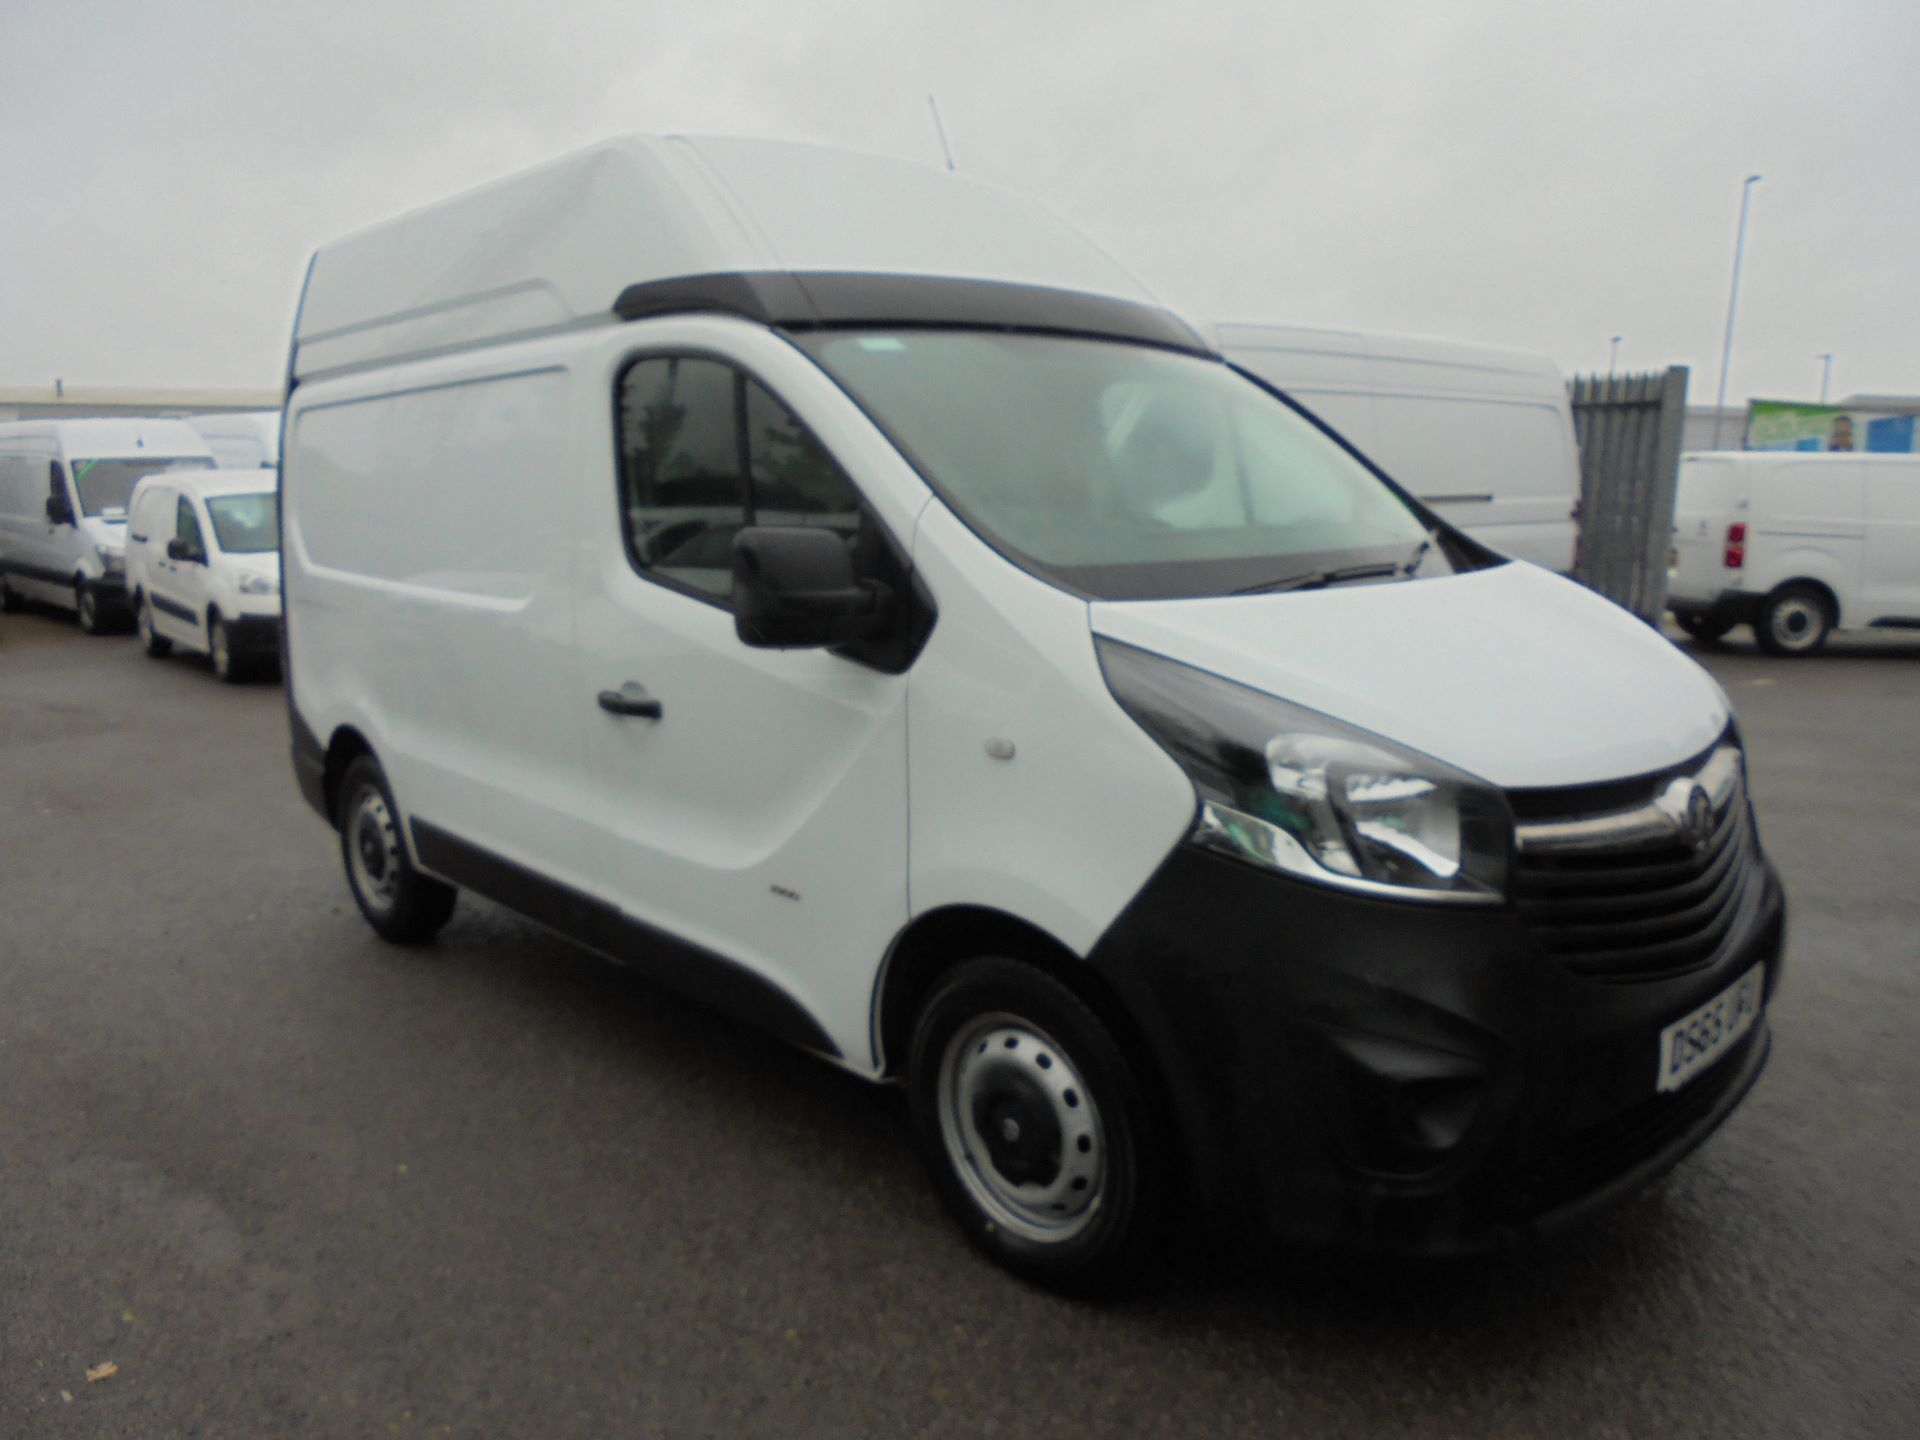 2016 Vauxhall Vivaro  L2 H2 2900 1.6 BITURBO 120PS ECOFLEX  EURO 5*VALUE RANGE VEHICLE CONDITION REFLECTED IN PRICE*  (DS65UFU)